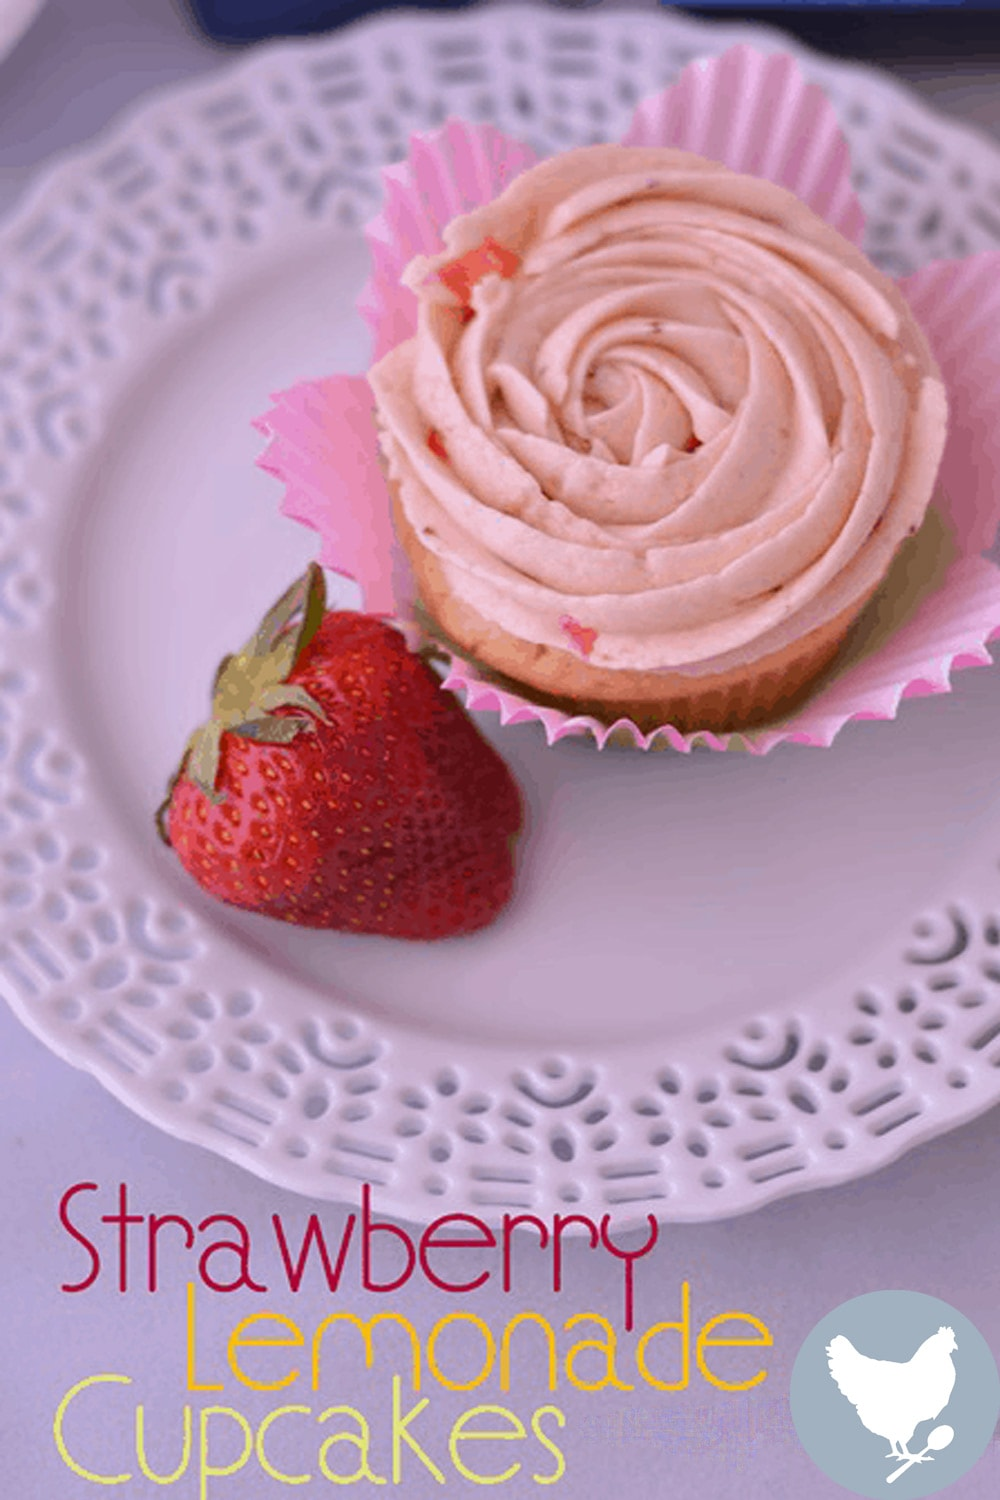 cakes – a lightly lemony cupcake topped with creamy frosting with actual bits of fresh strawberry. Mmmmmmm!